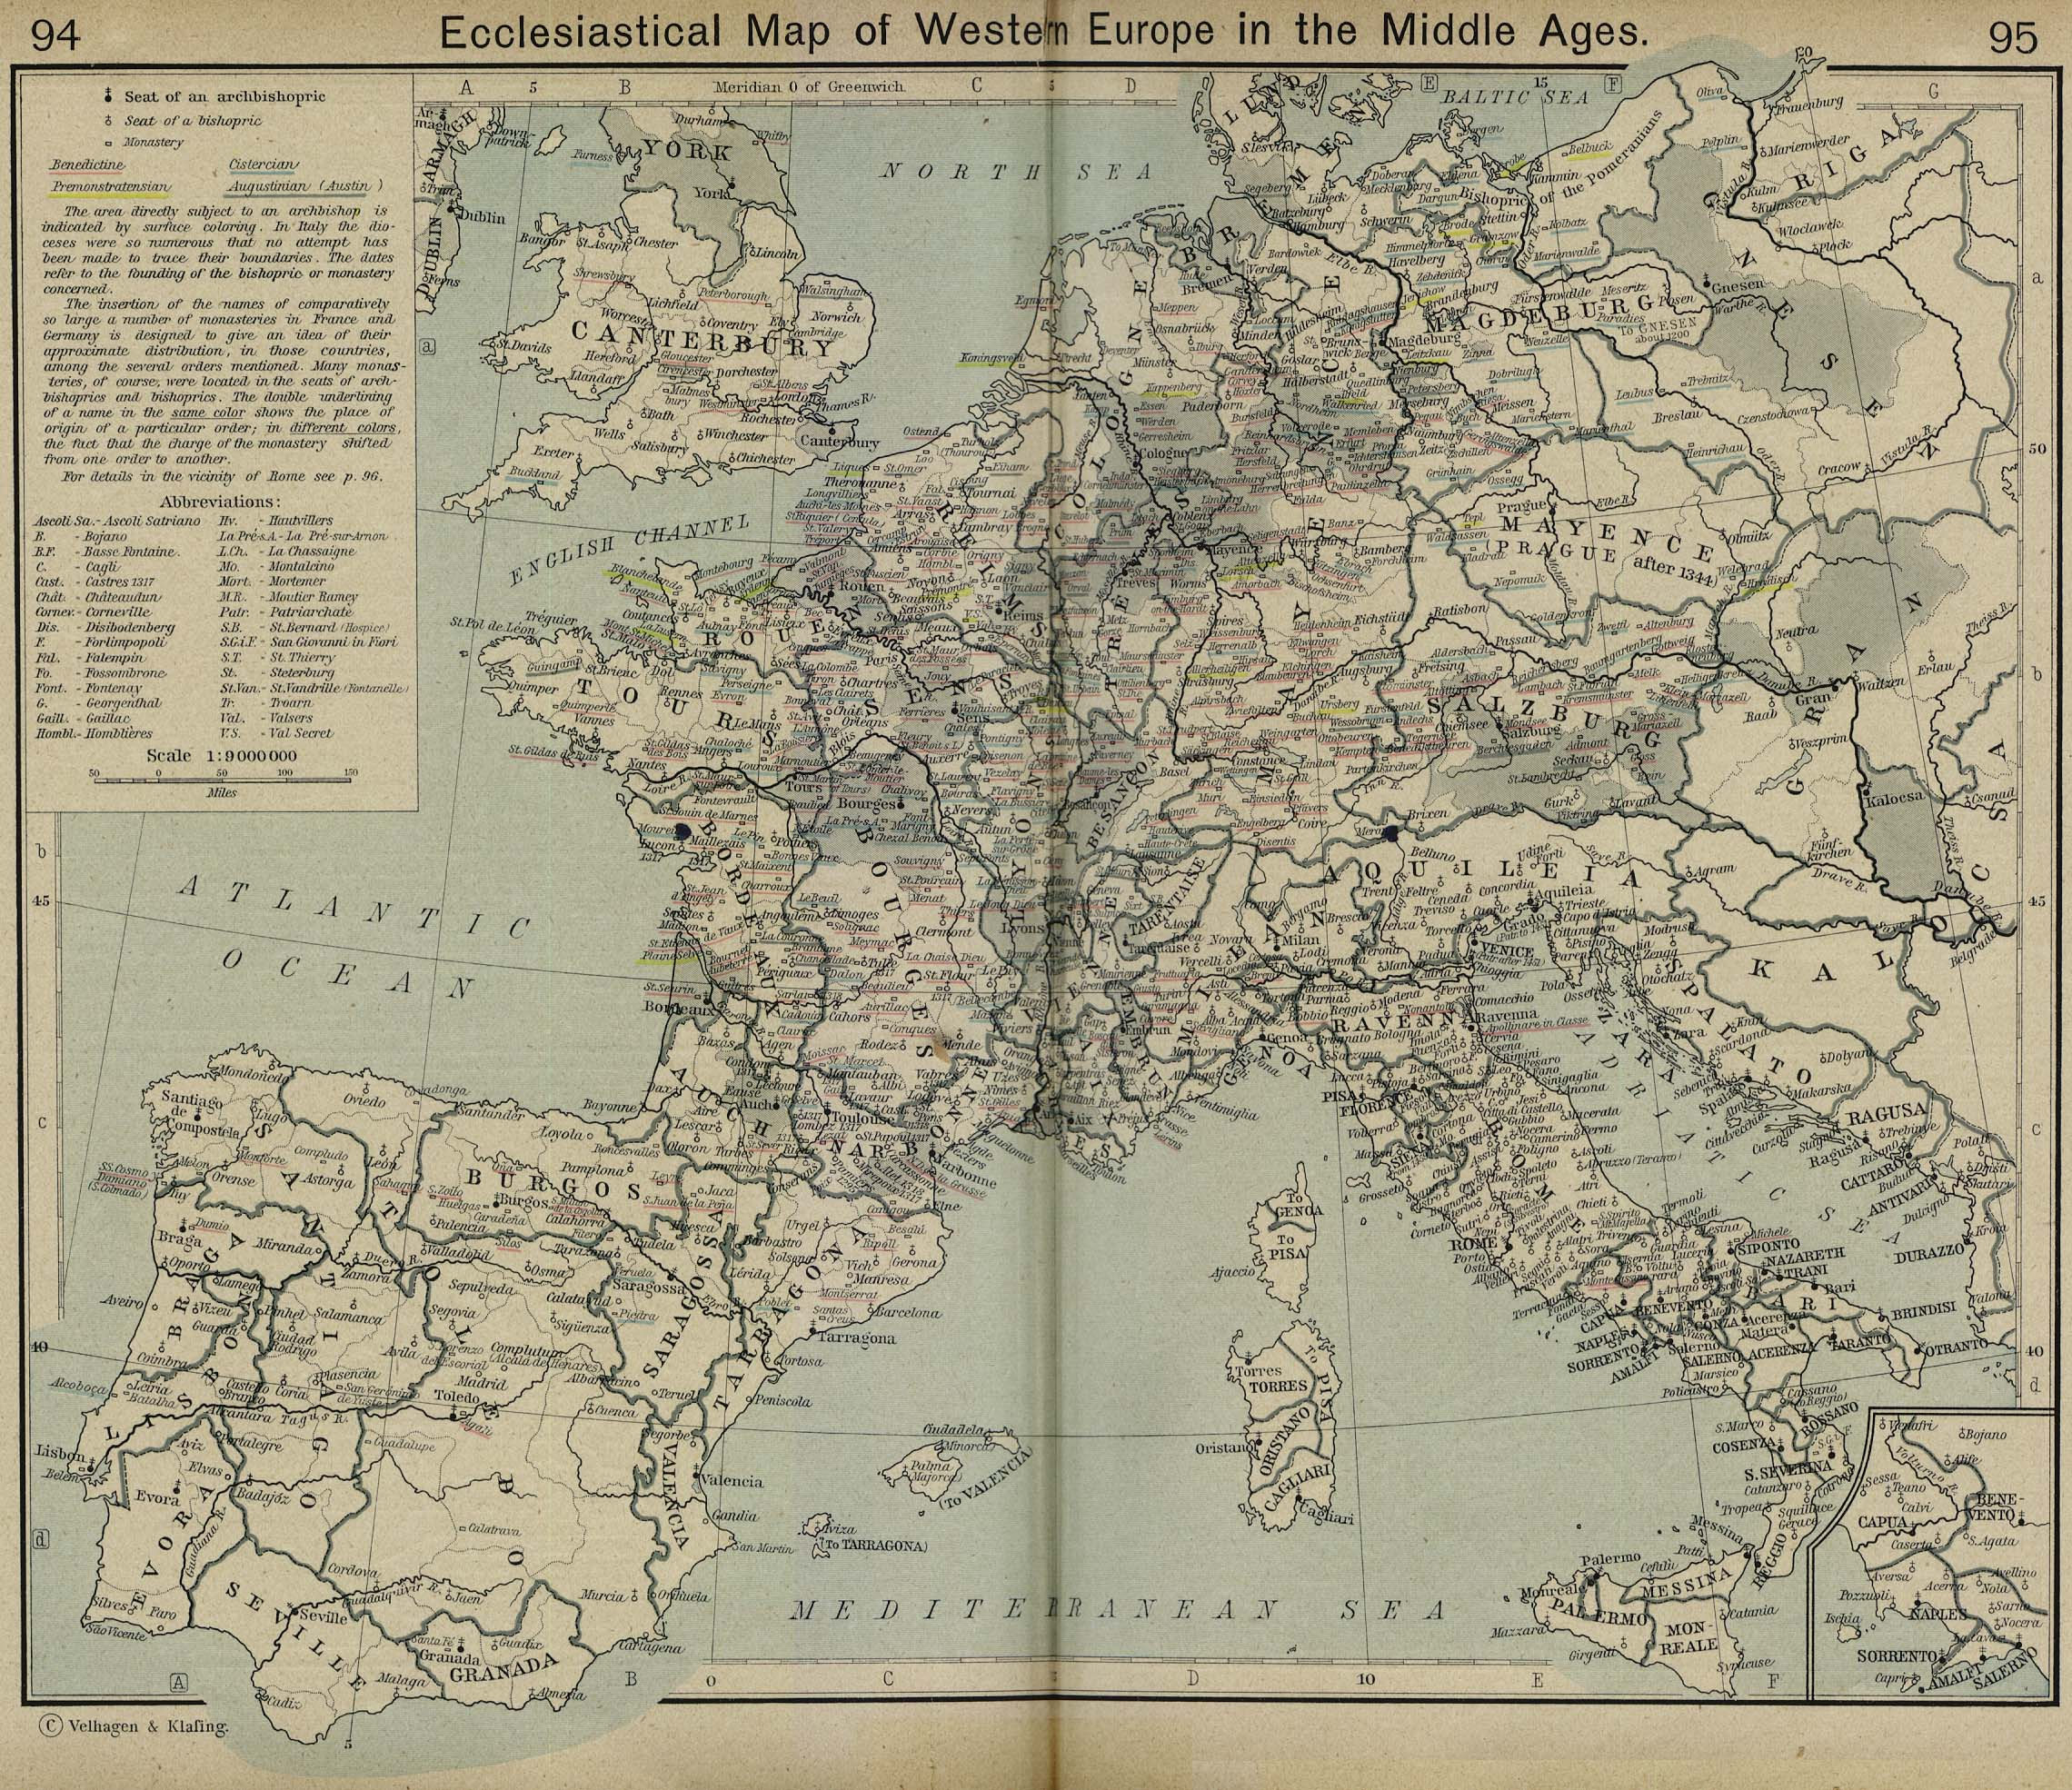 Maps of the Middle Ages - Social Studies for Kids